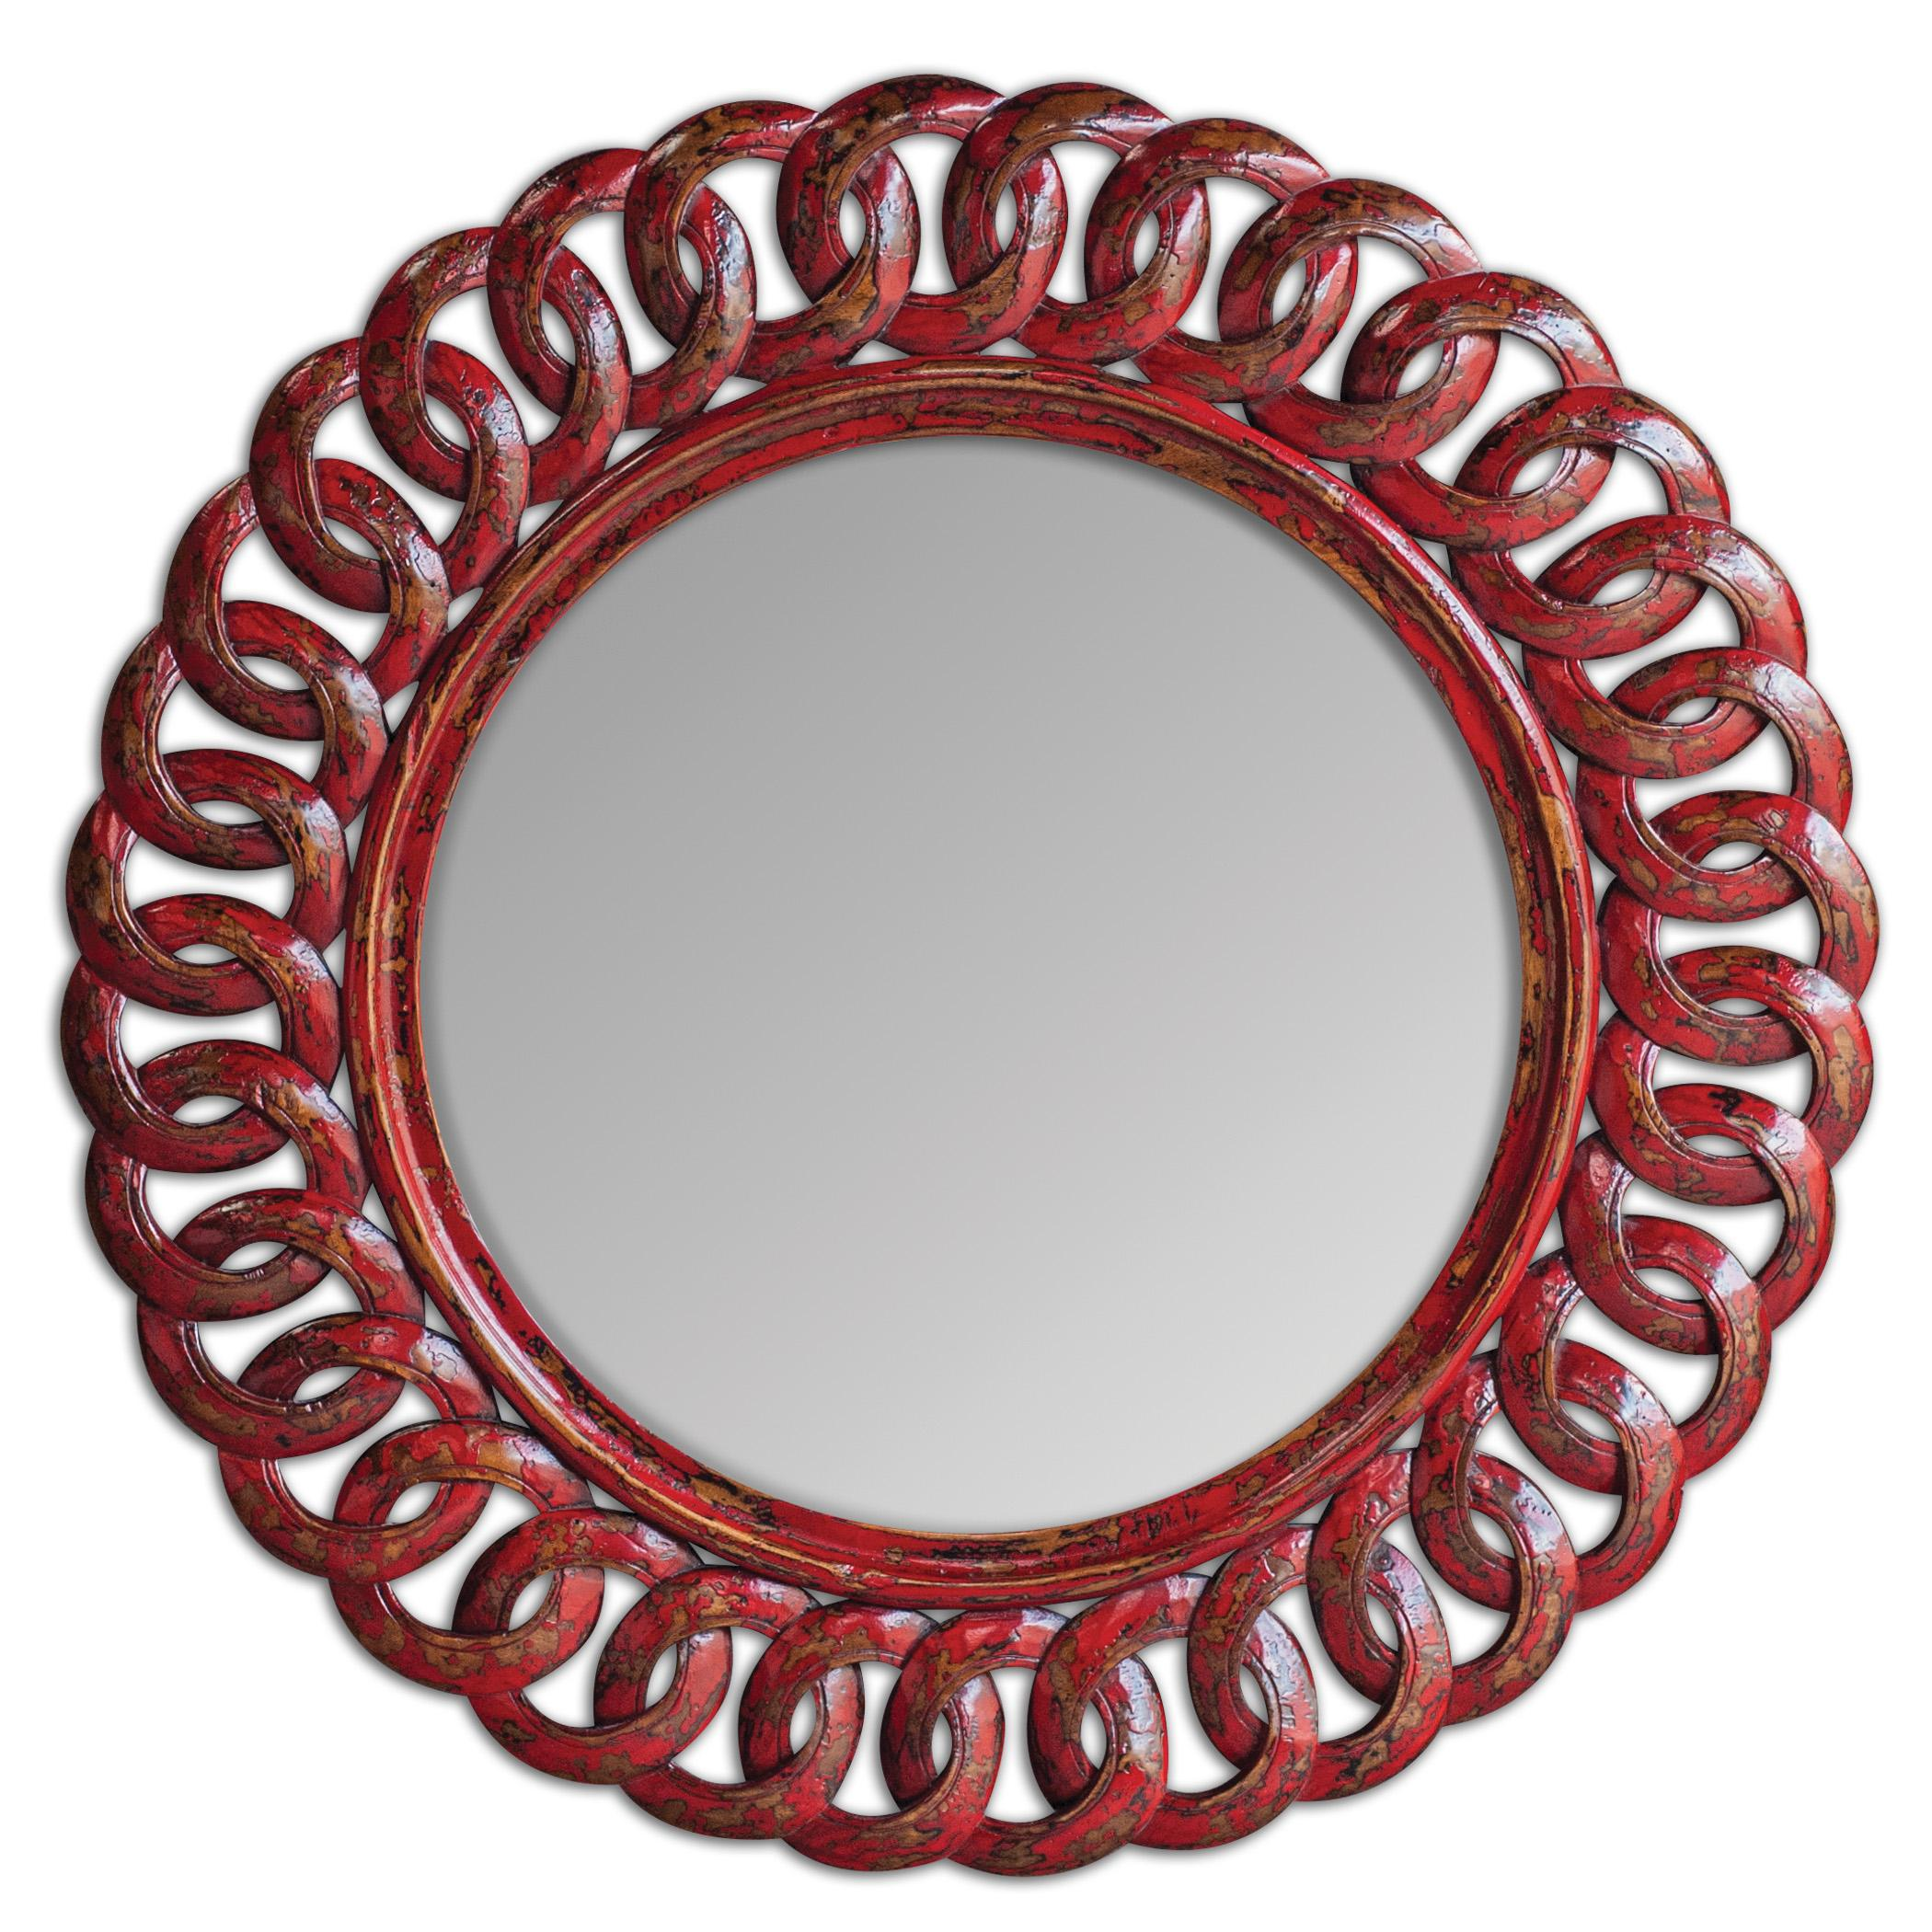 Uttermost Mirrors Sassia Red Round Mirror - Item Number: 05029